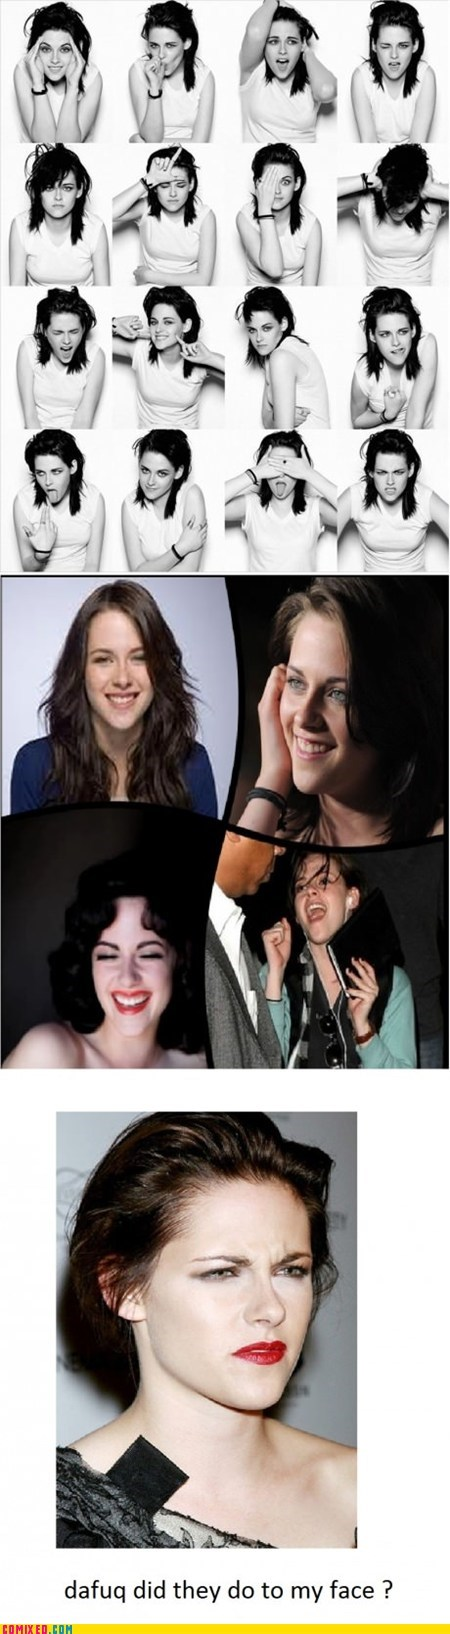 dafuq kristen stewart smiling the internets twilight - 6226912000